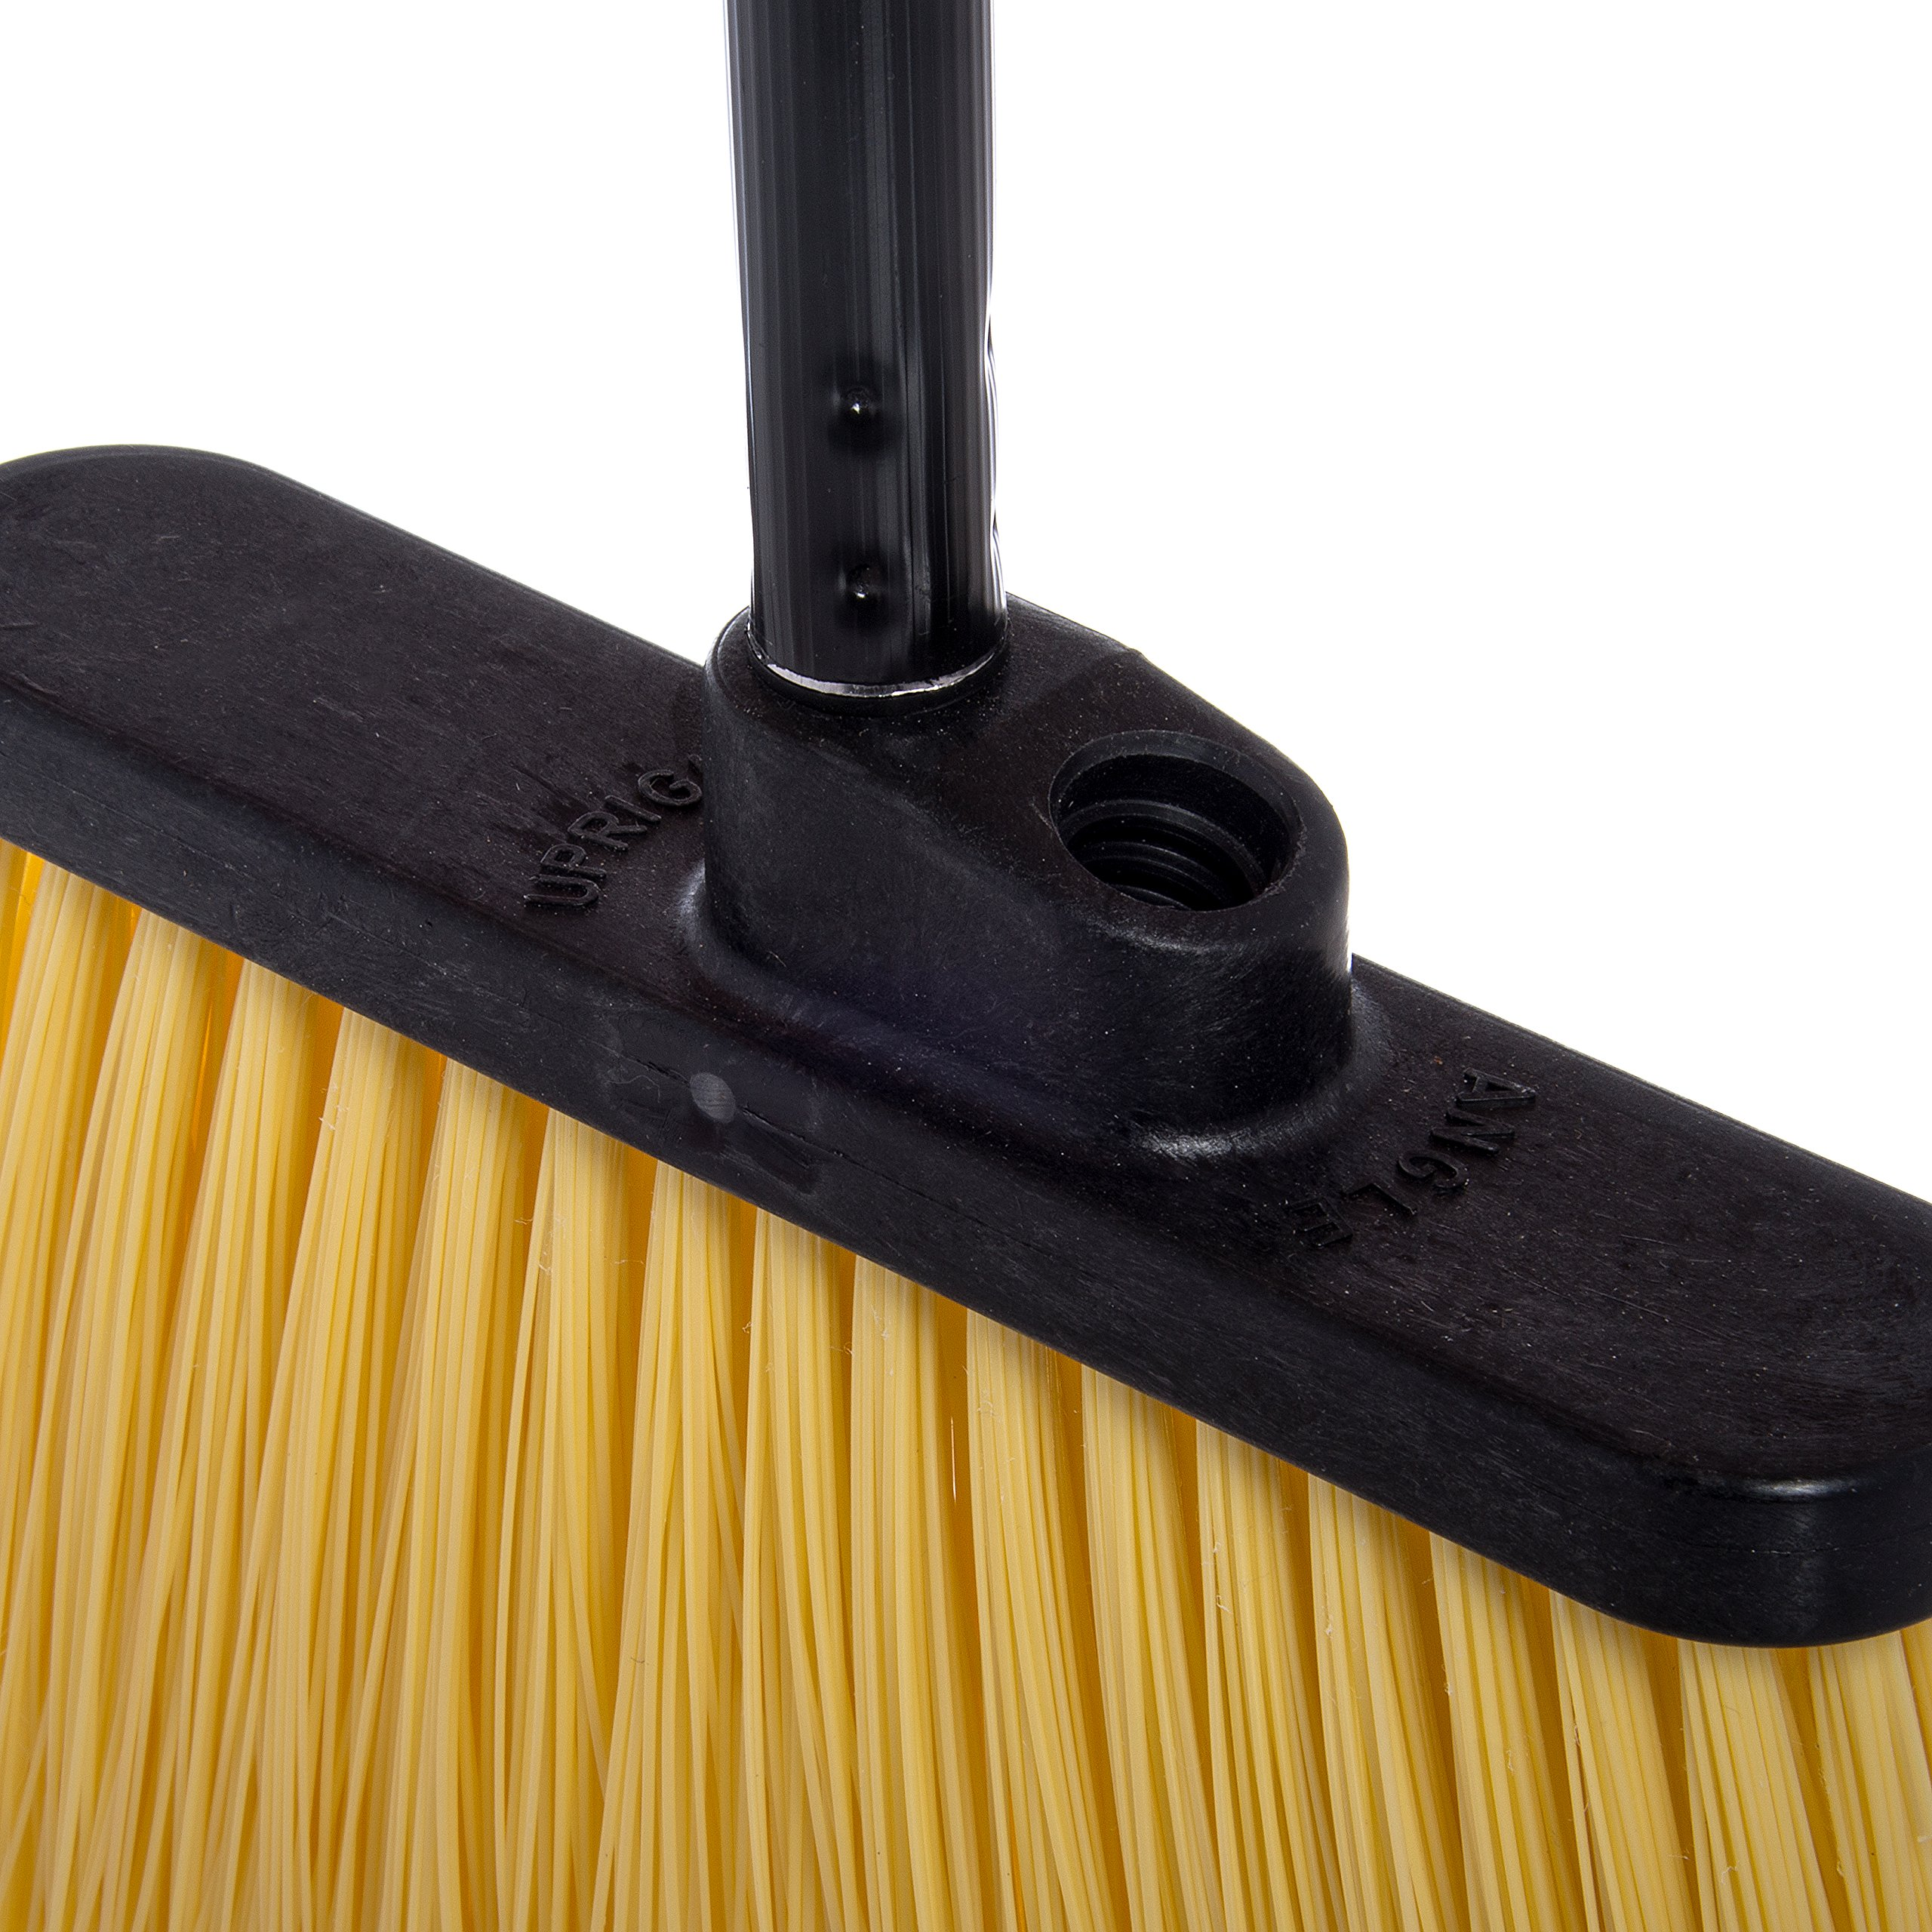 Carlisle 3686500 Duo-Sweep Flagged Angle Broom, 56'' Length by Carlisle (Image #5)